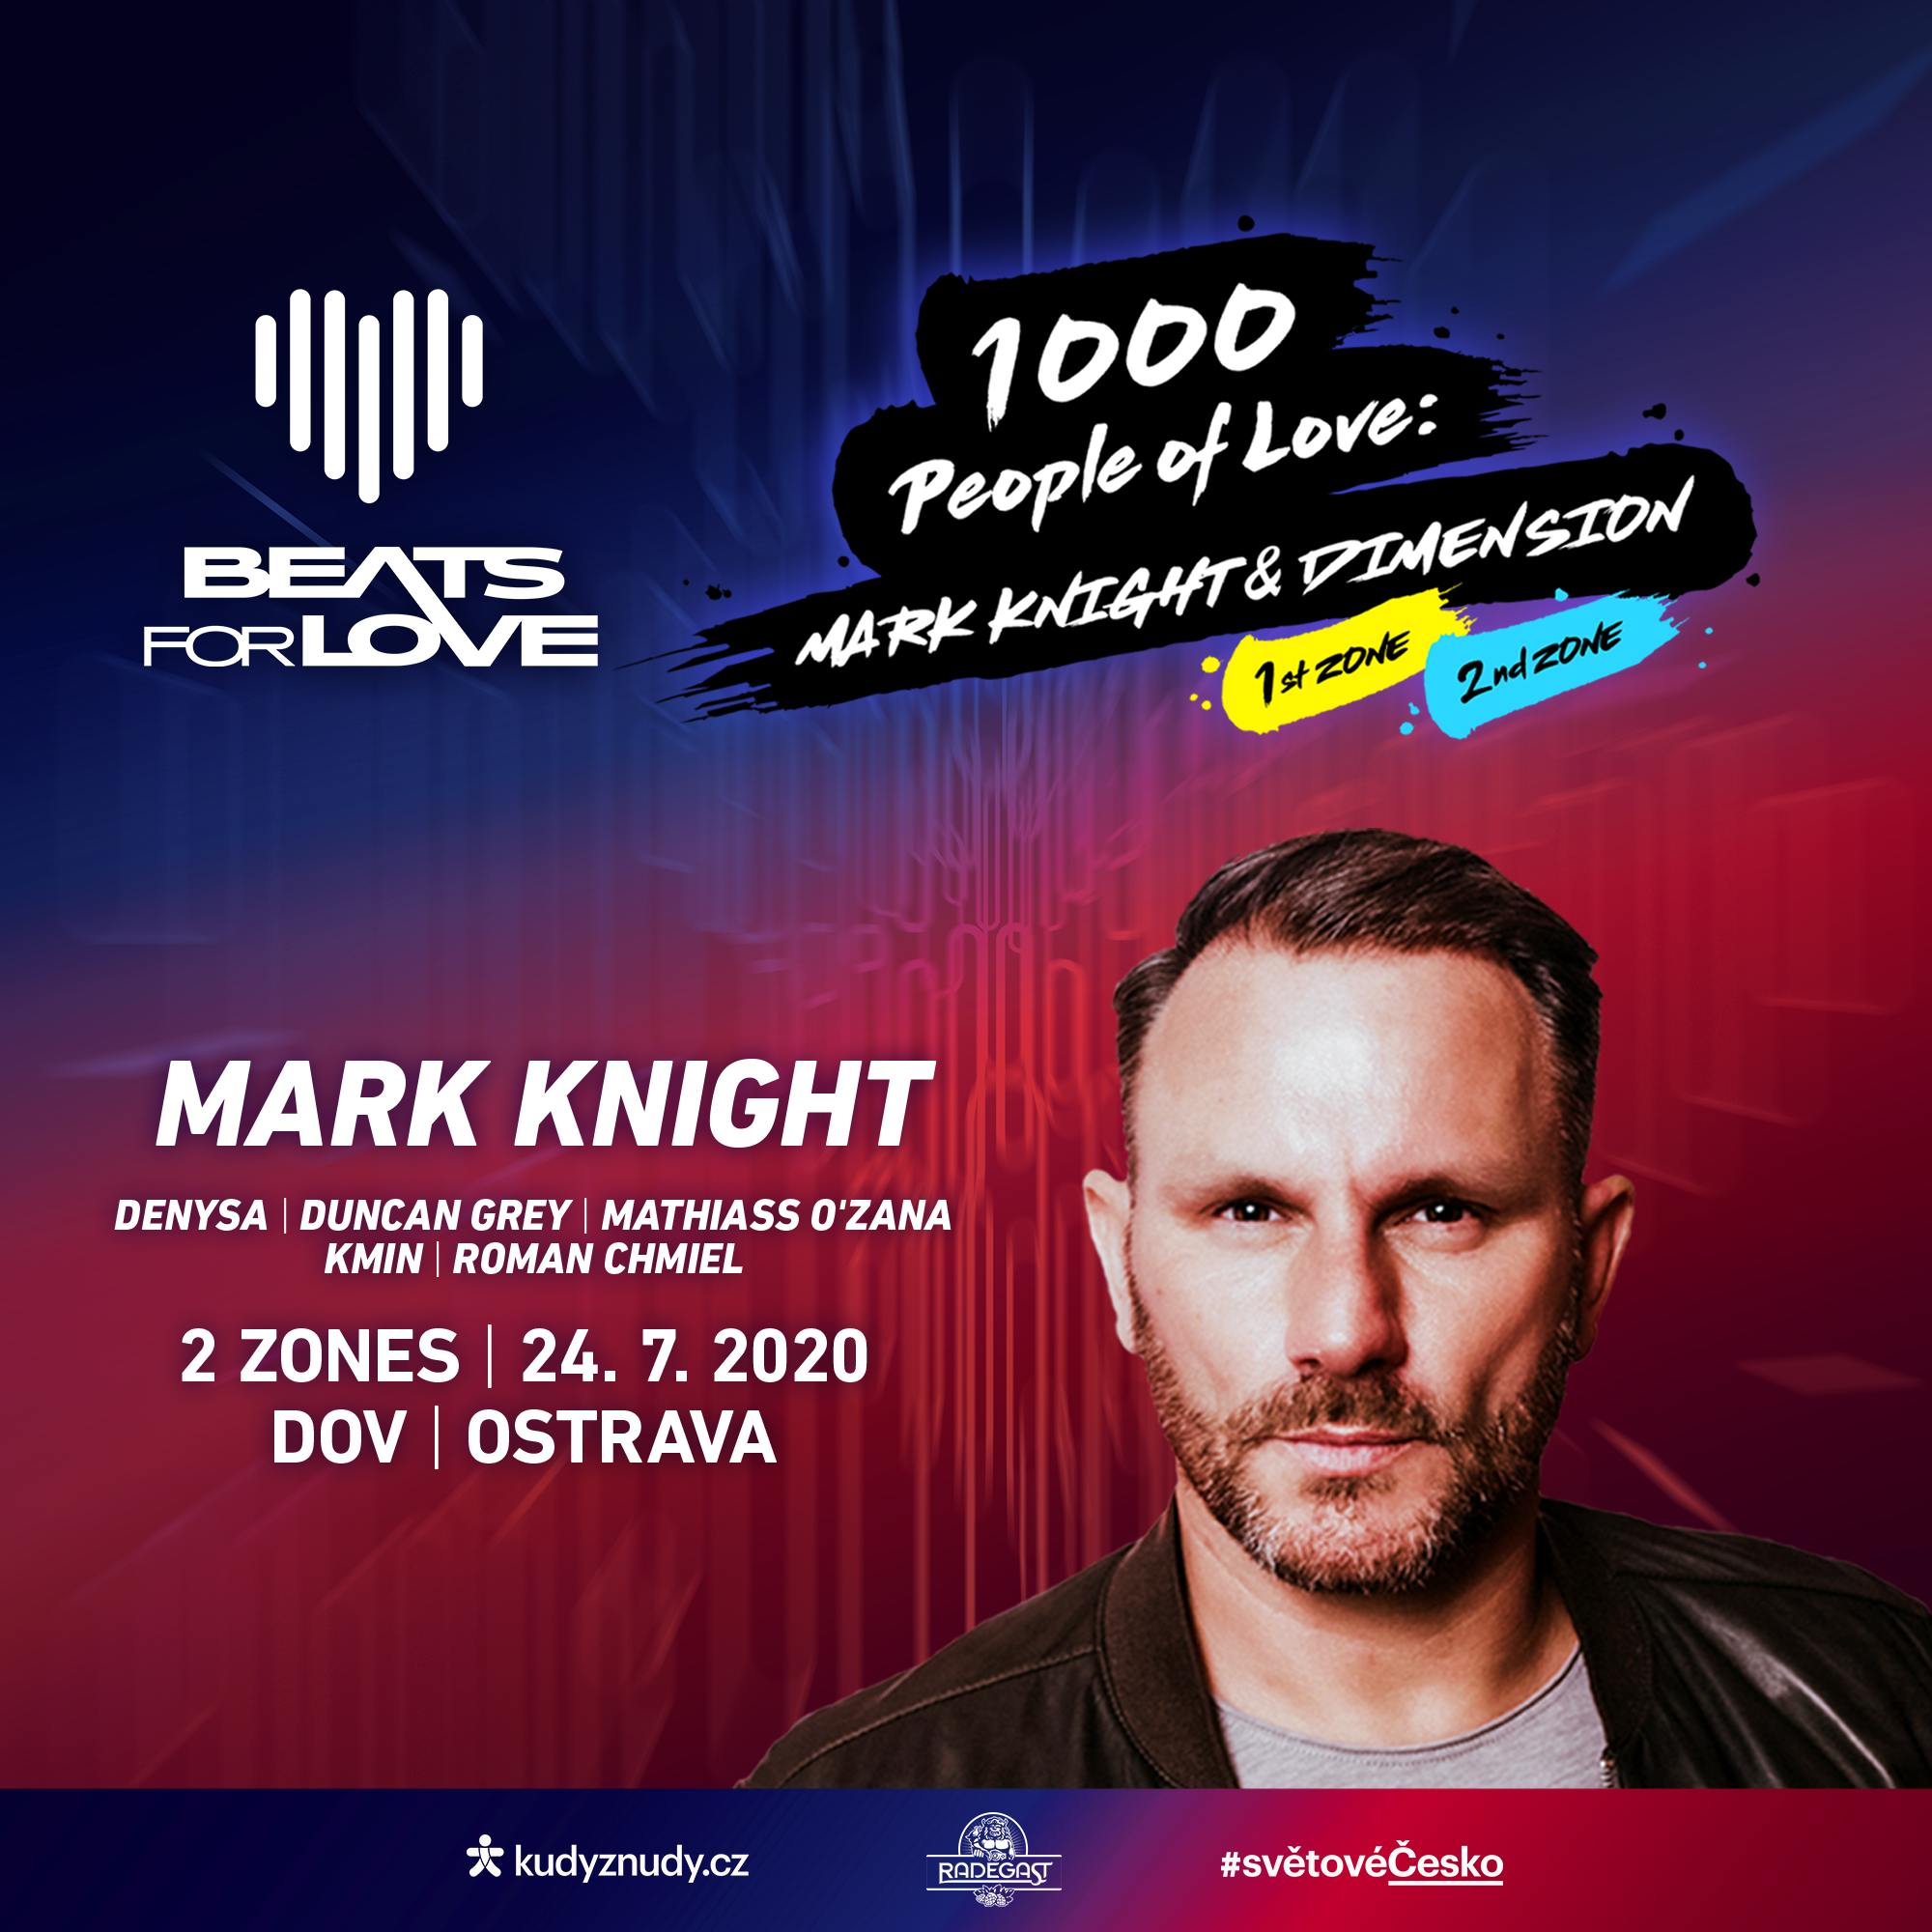 Beats for Love: 1000 People of Love 2 Zone<BR>House & Techno w/ Mark Knight